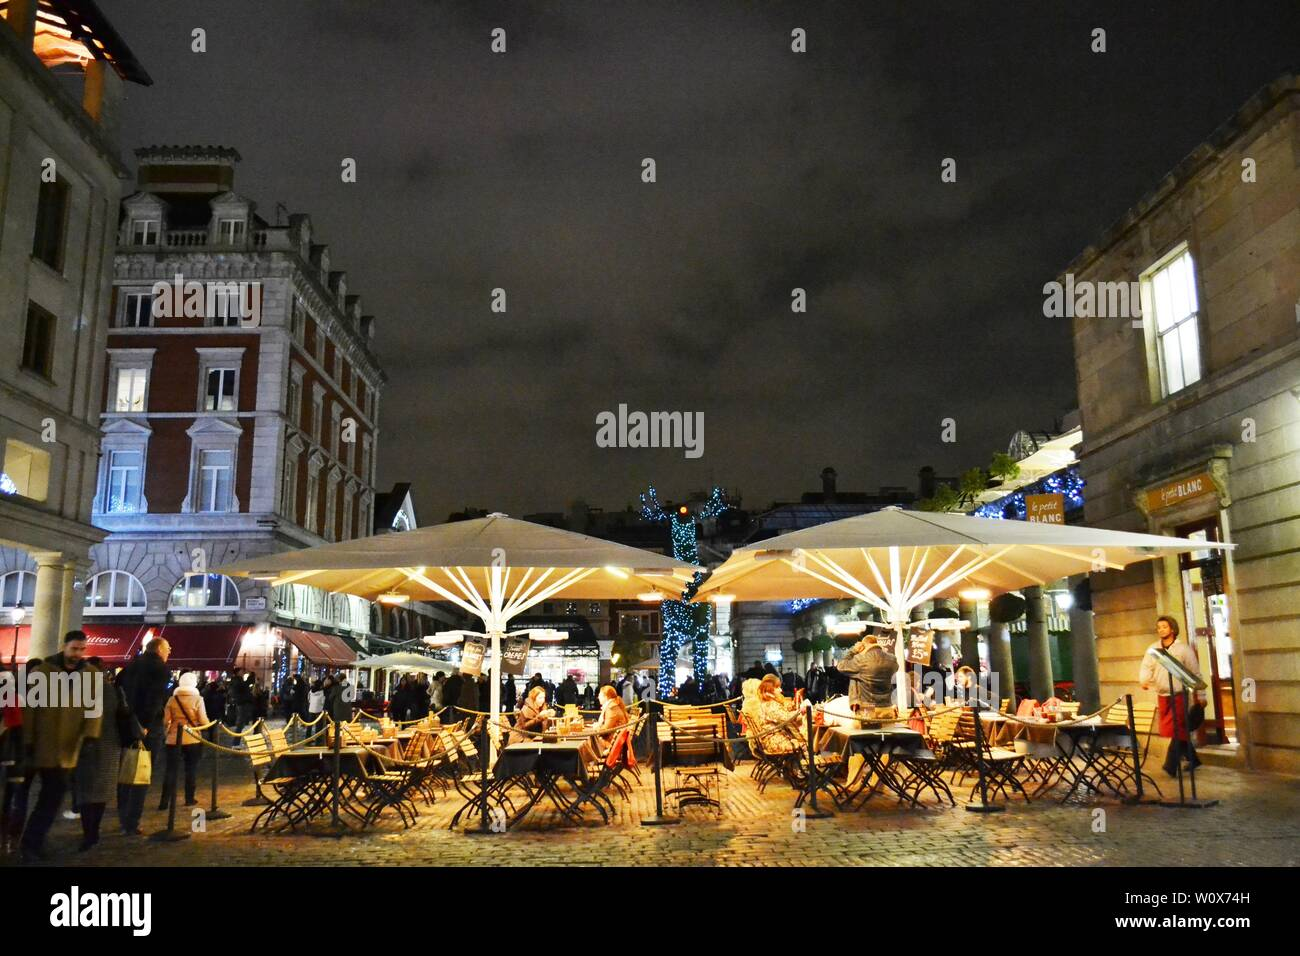 London/UK - November 27, 2013: People eating under tents at the Covent Garden external catering space during Christmas holidays. Stock Photo